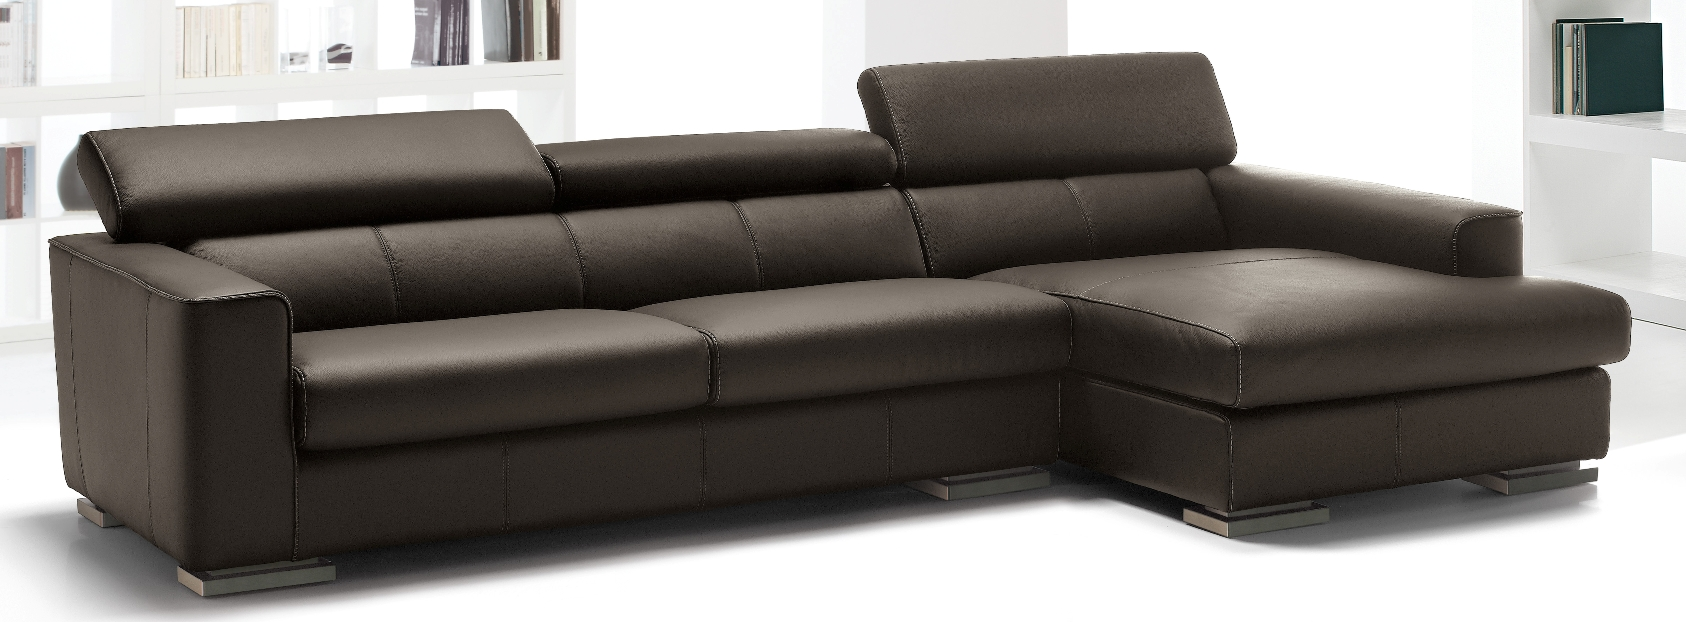 modern luxury leather sofa fine home furnishings high quality